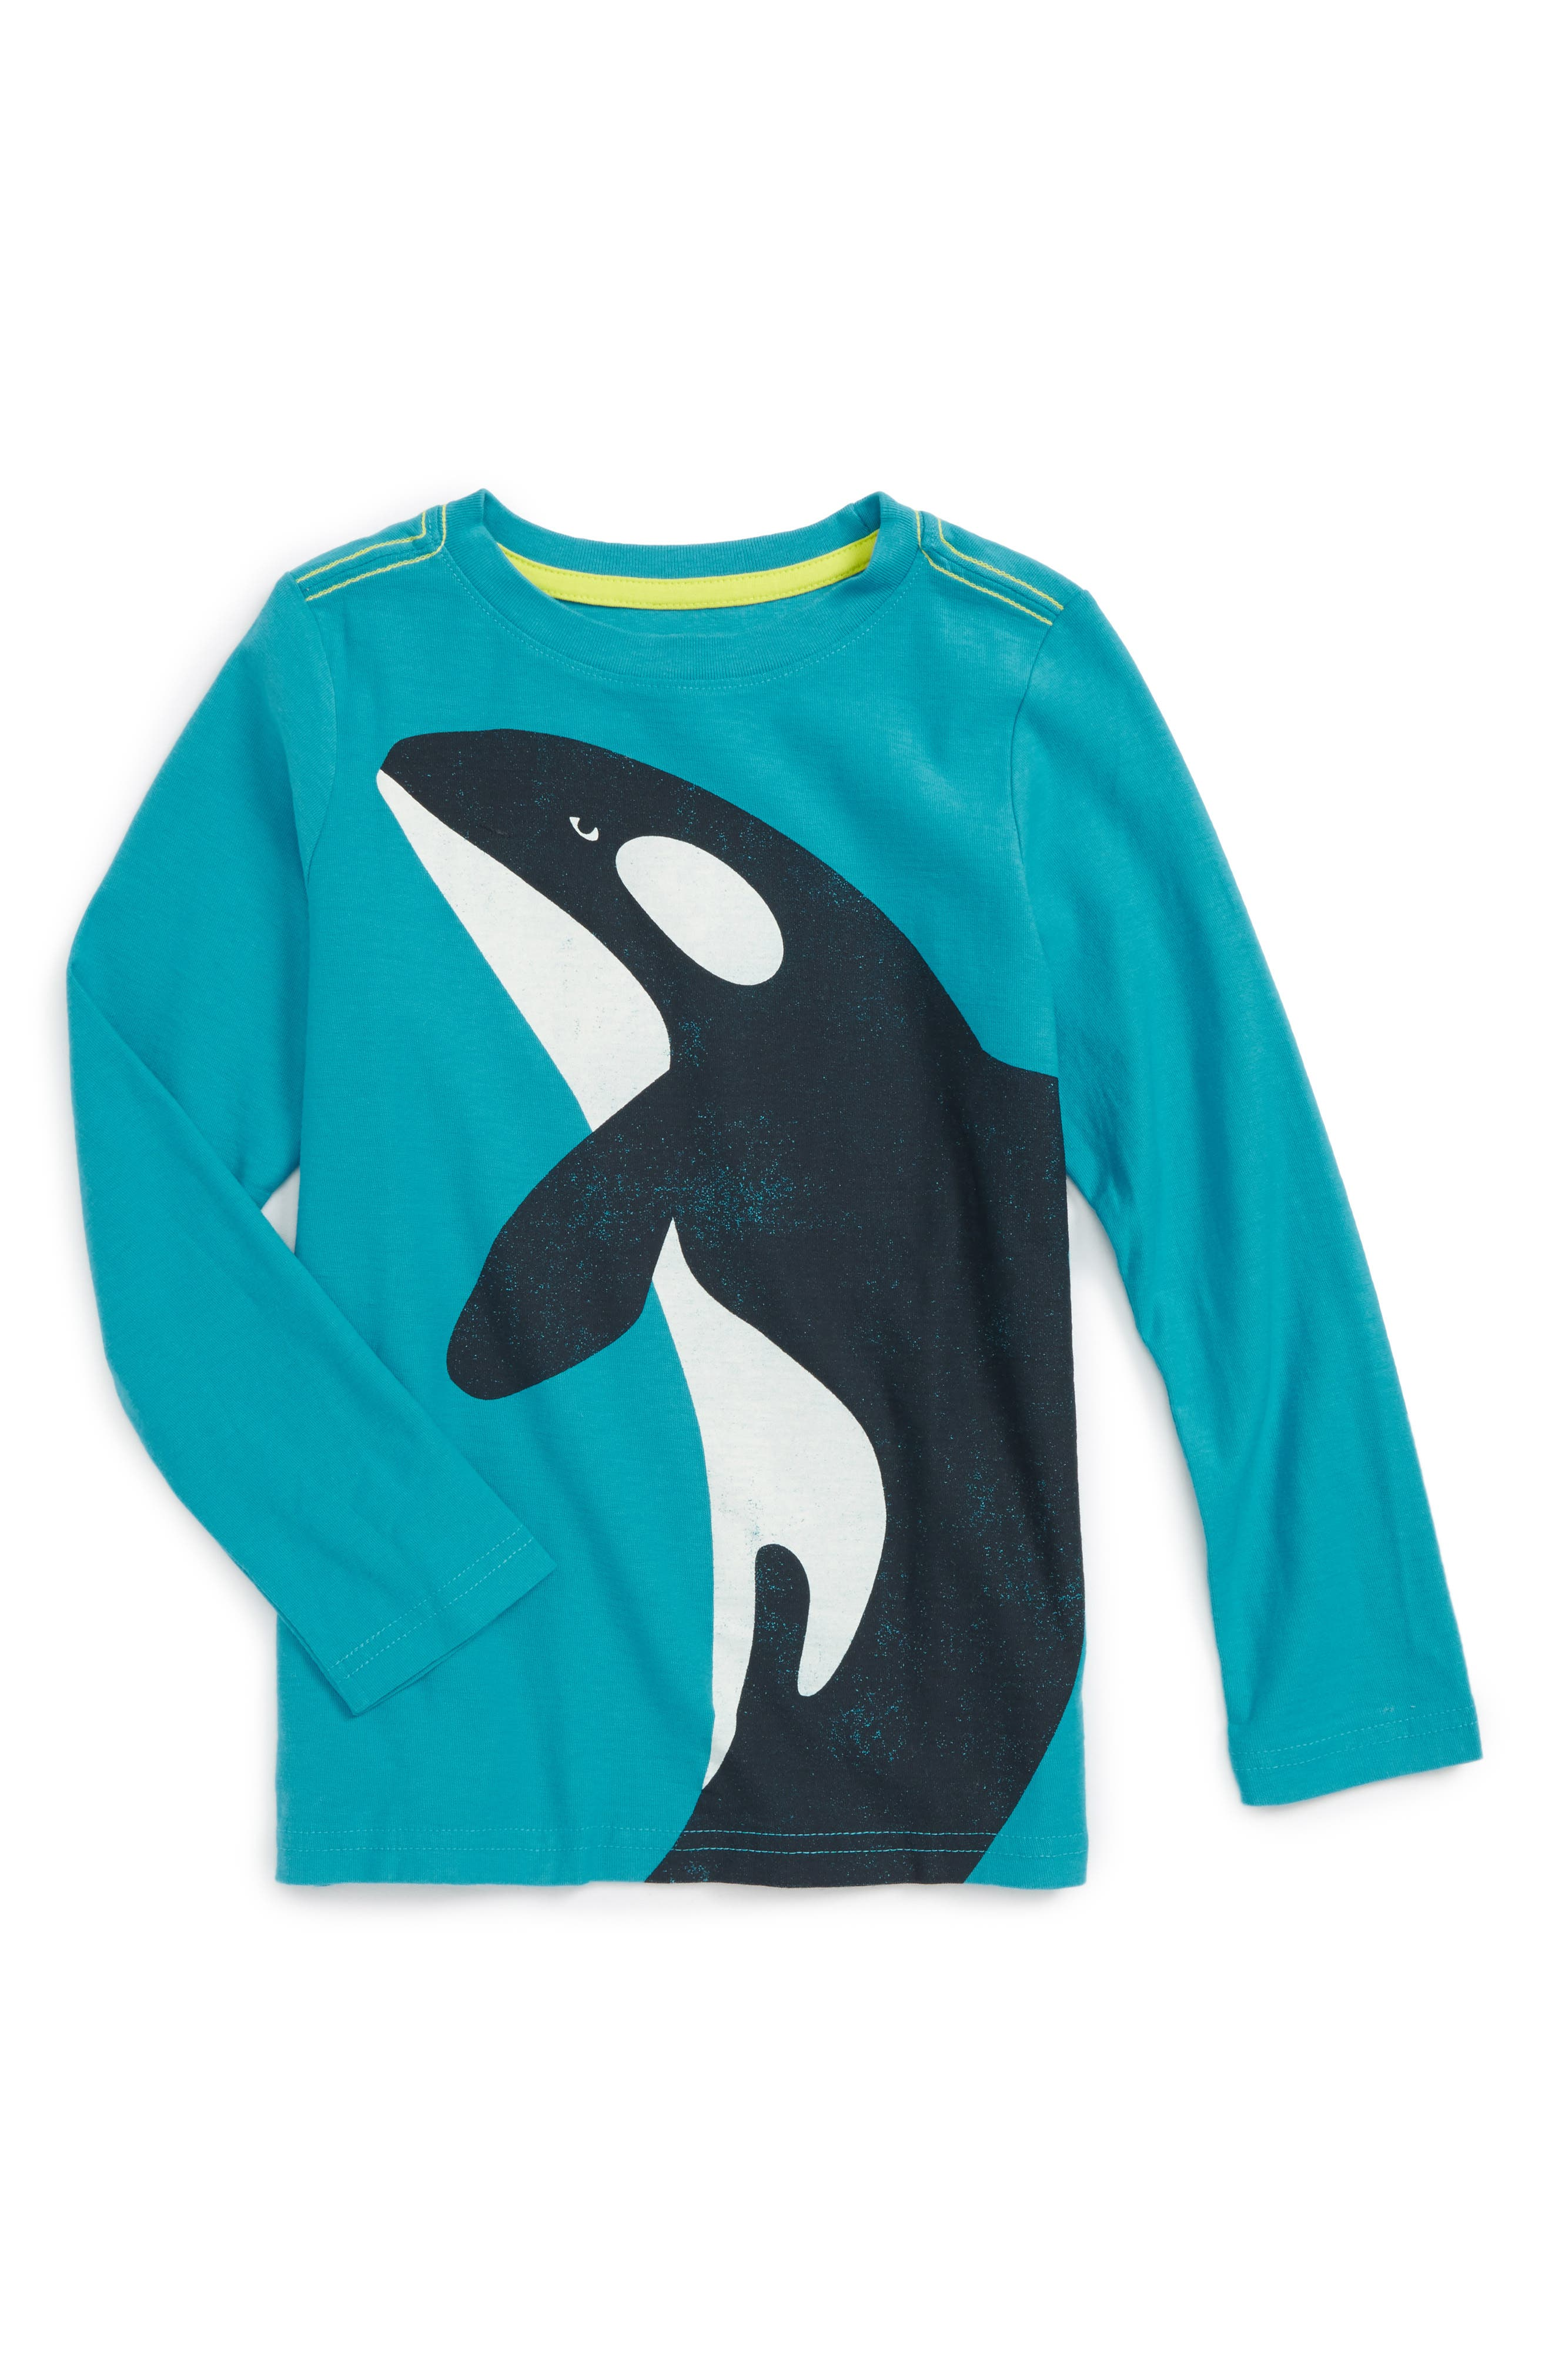 Tea Collection Orca Graphic T-Shirt (Toddler Boys & Little Boys)